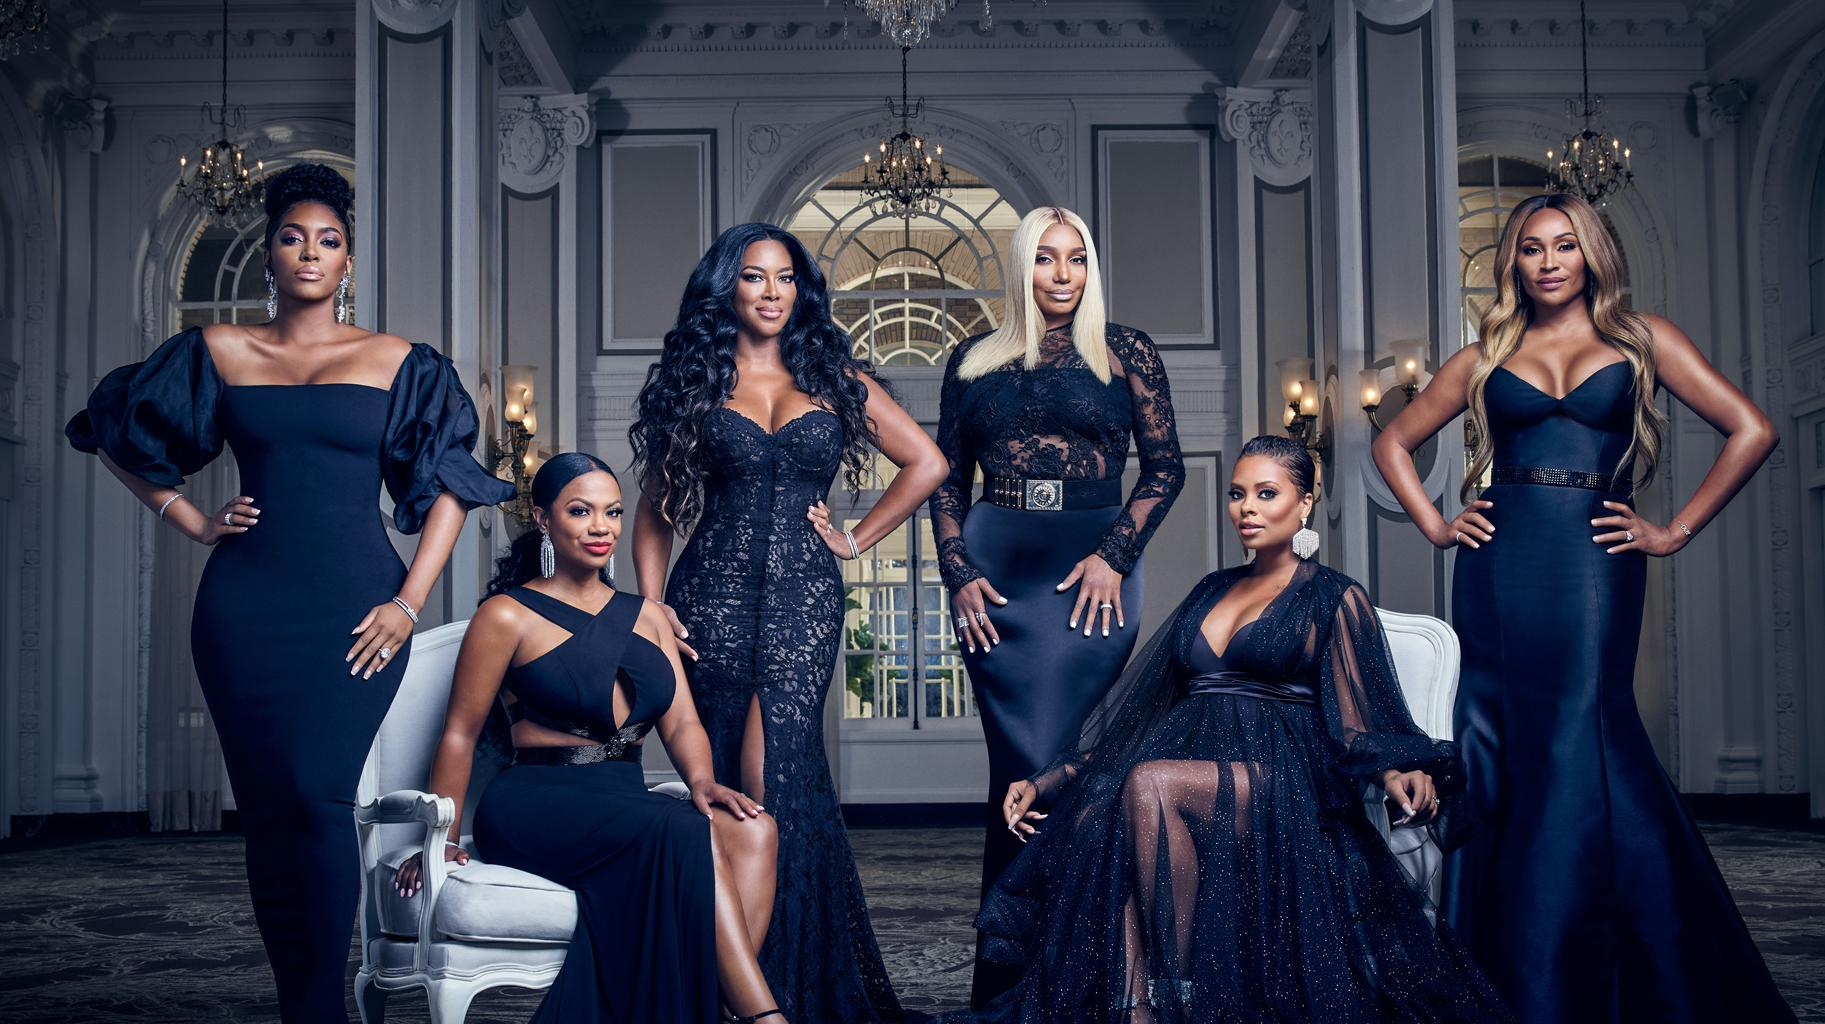 RHOA Filming Wraps: Nene Leakes On The Outs With Kenya Moore And Cynthia Bailey While Reunited With Kandi Buruss And Porsha Williams